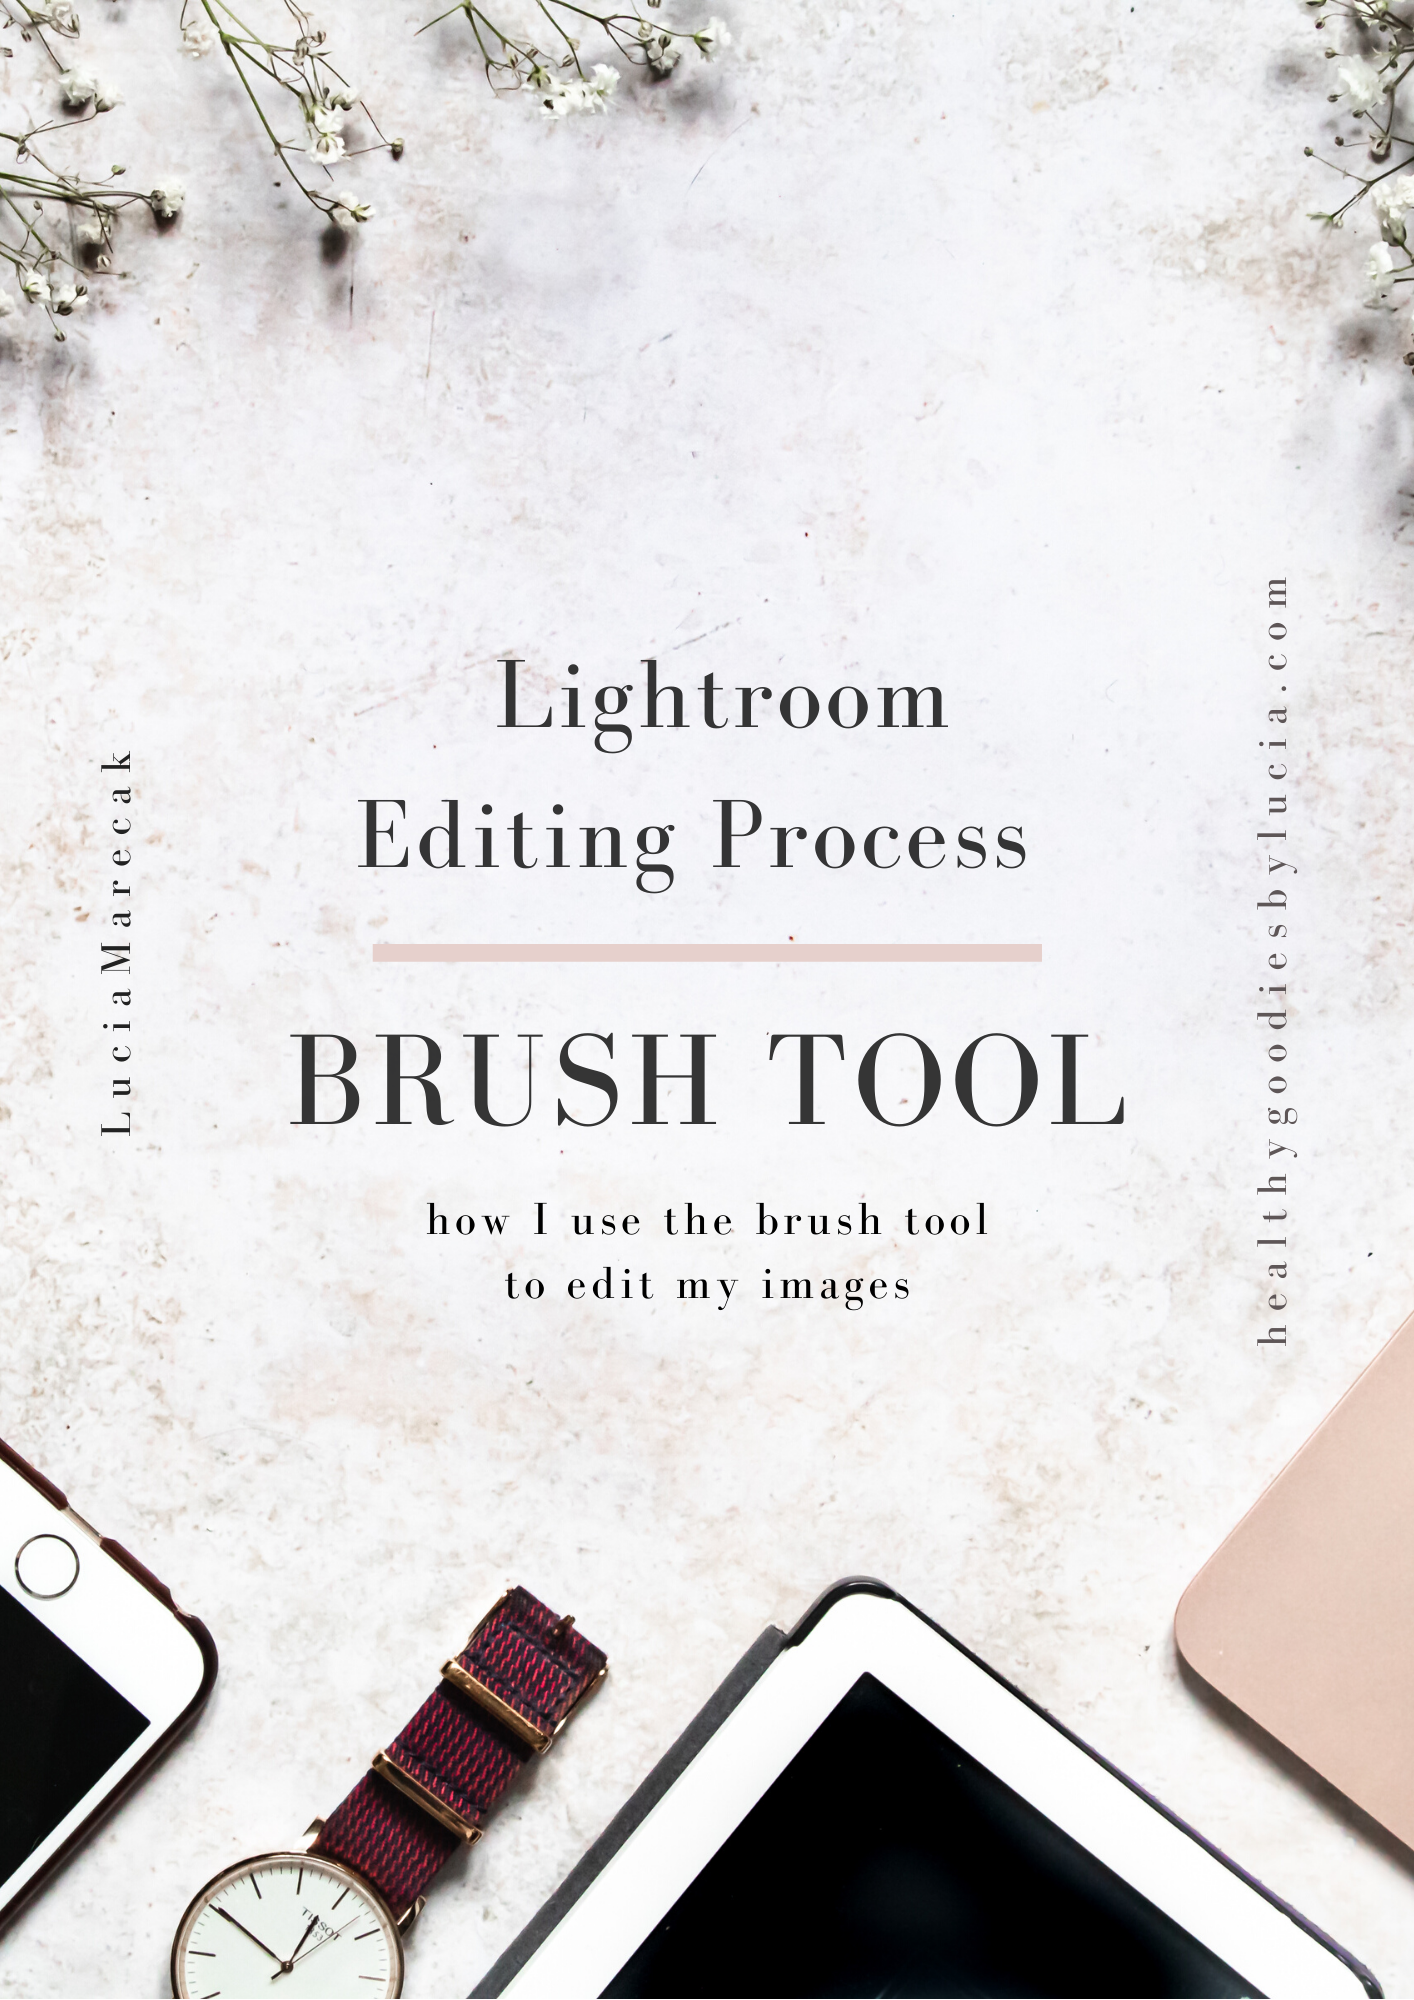 Lightroom Education Series Brush tool editing | Healthy Goodies by Lucia